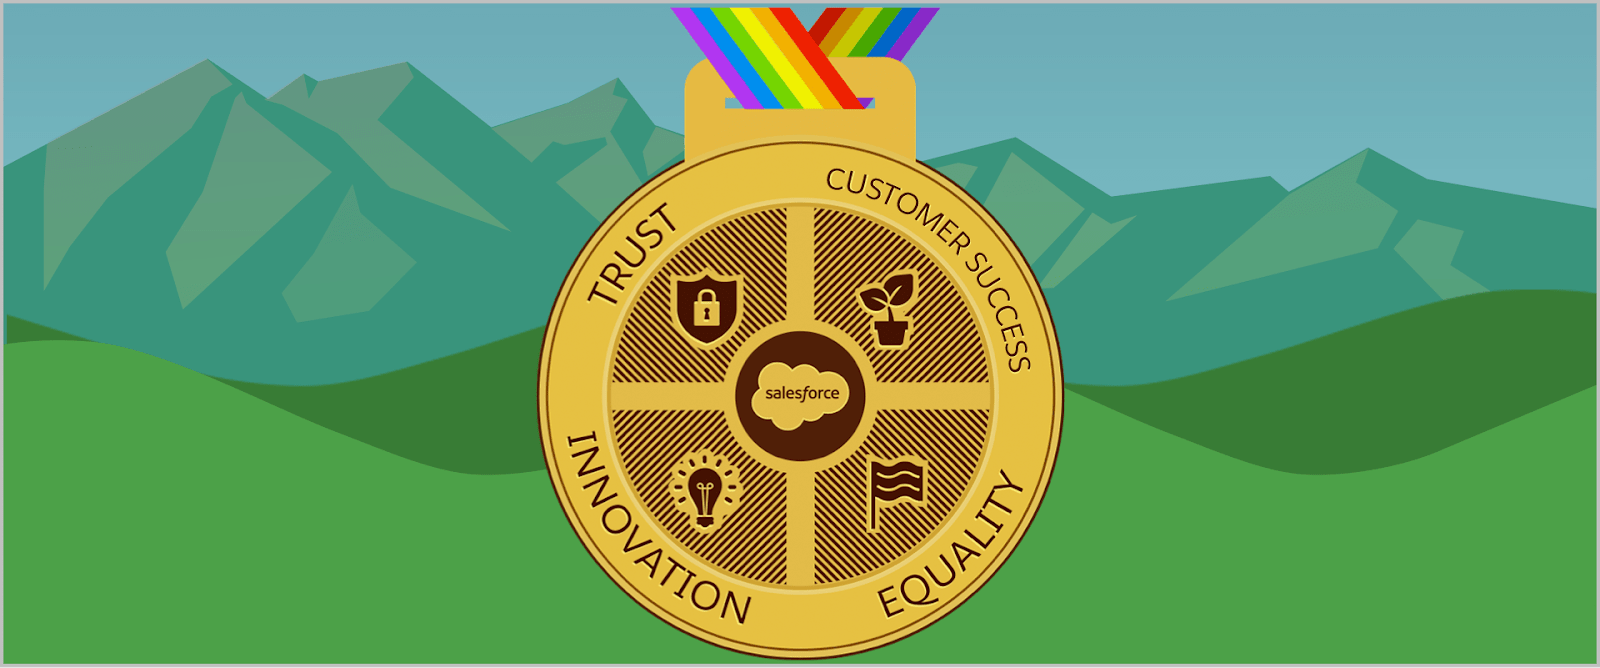 A medal showing the four core values that drives everything we do at Salesforce: Trust, customer success, equality, and innovation.